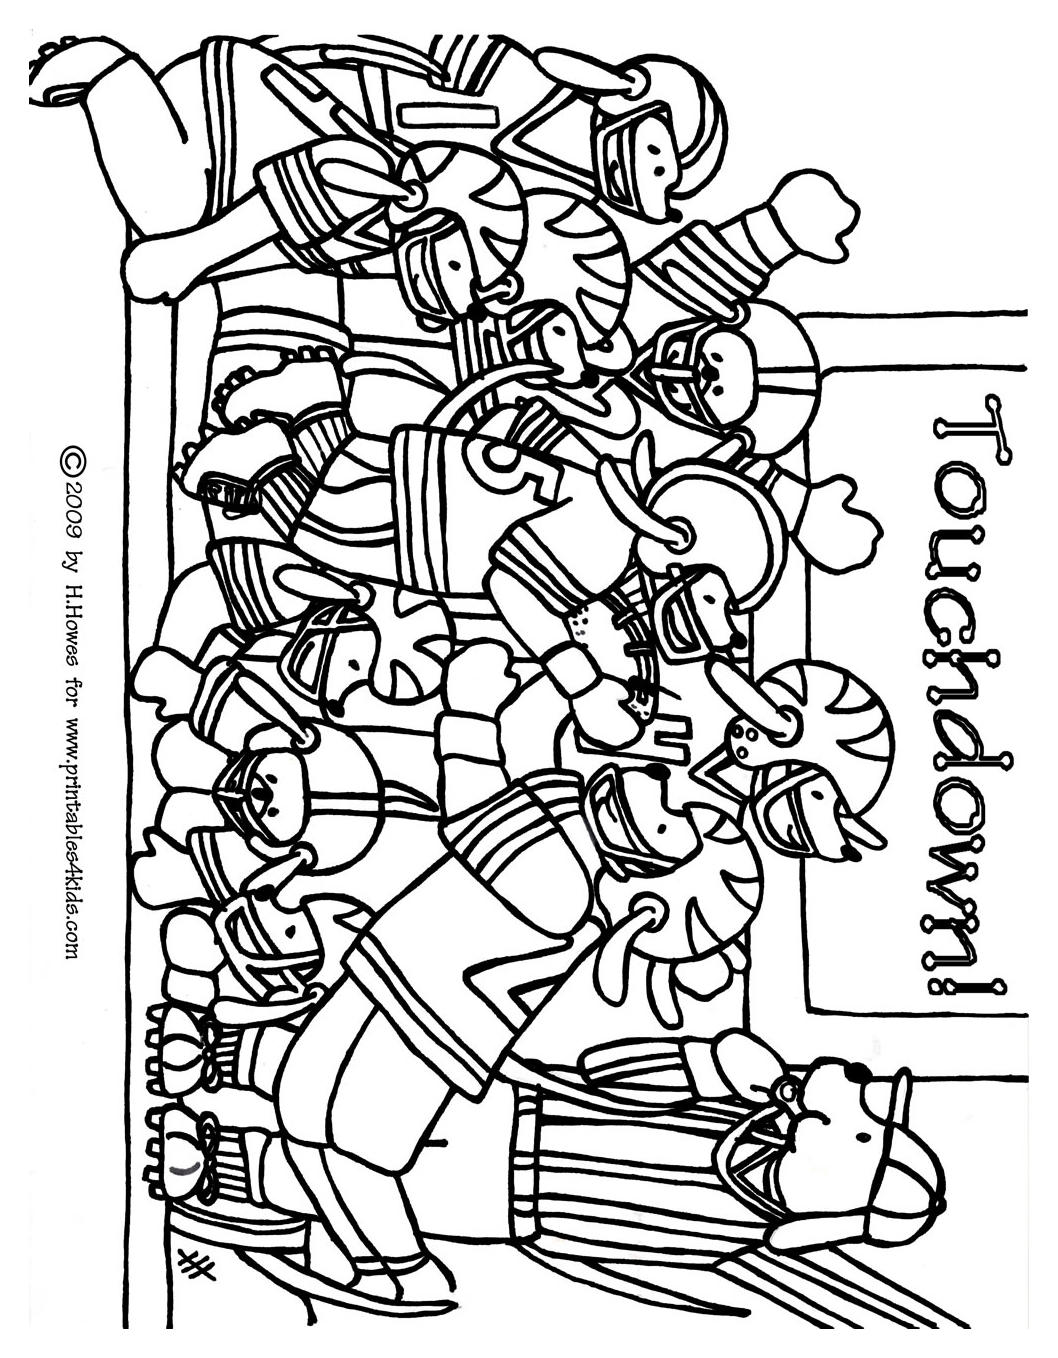 Football game coloring pages coloring home for Football color page